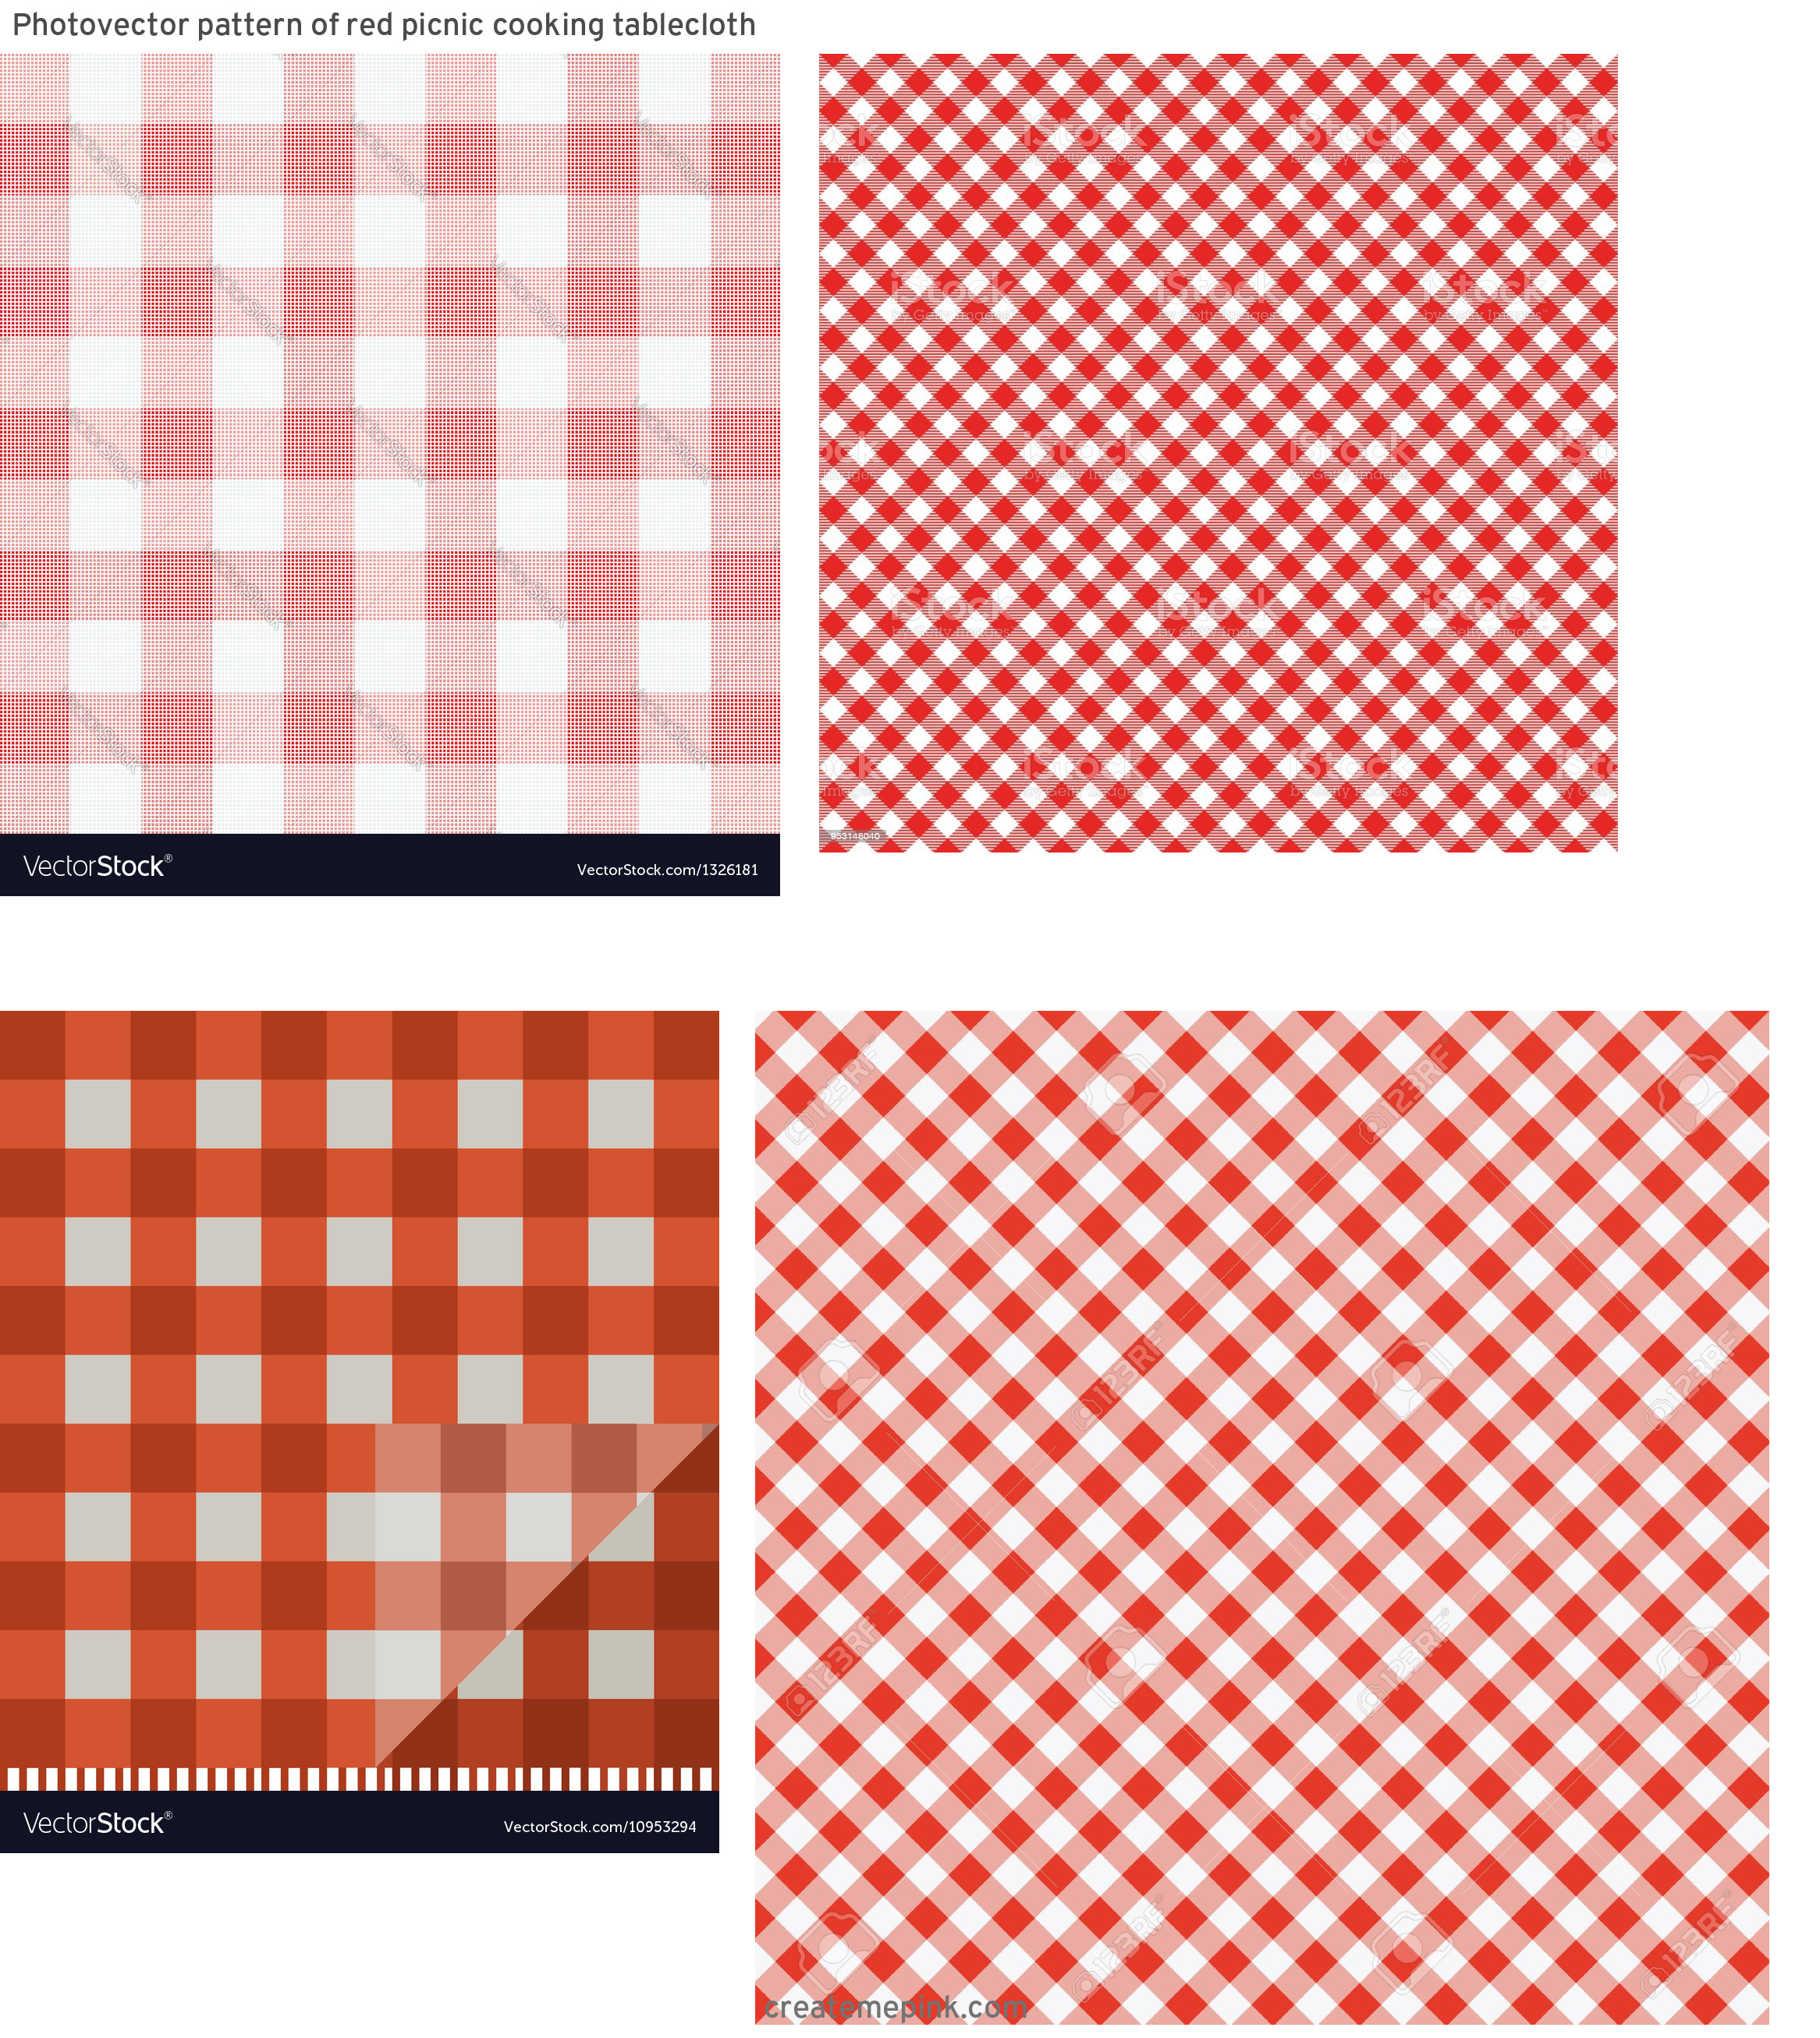 Picnic Cloth Vector: Photovector Pattern Of Red Picnic Cooking Tablecloth